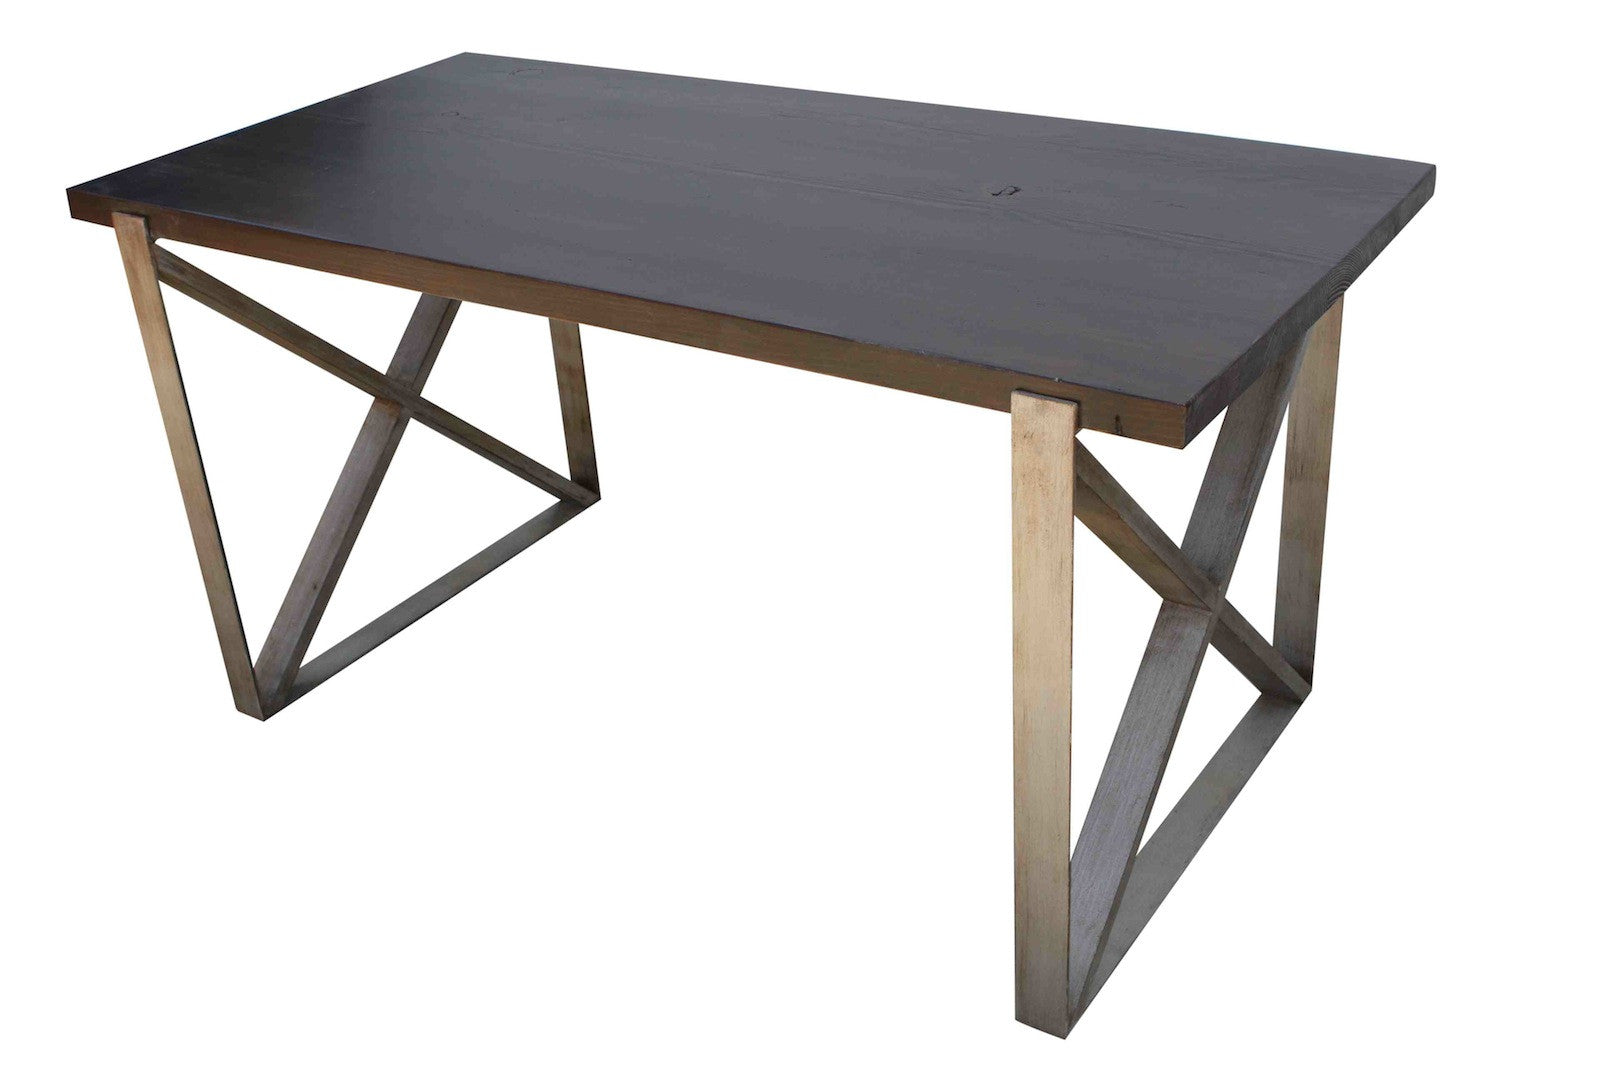 Industrial dining table -  Chicago Industrial Dining Table In Reclaimed Wood